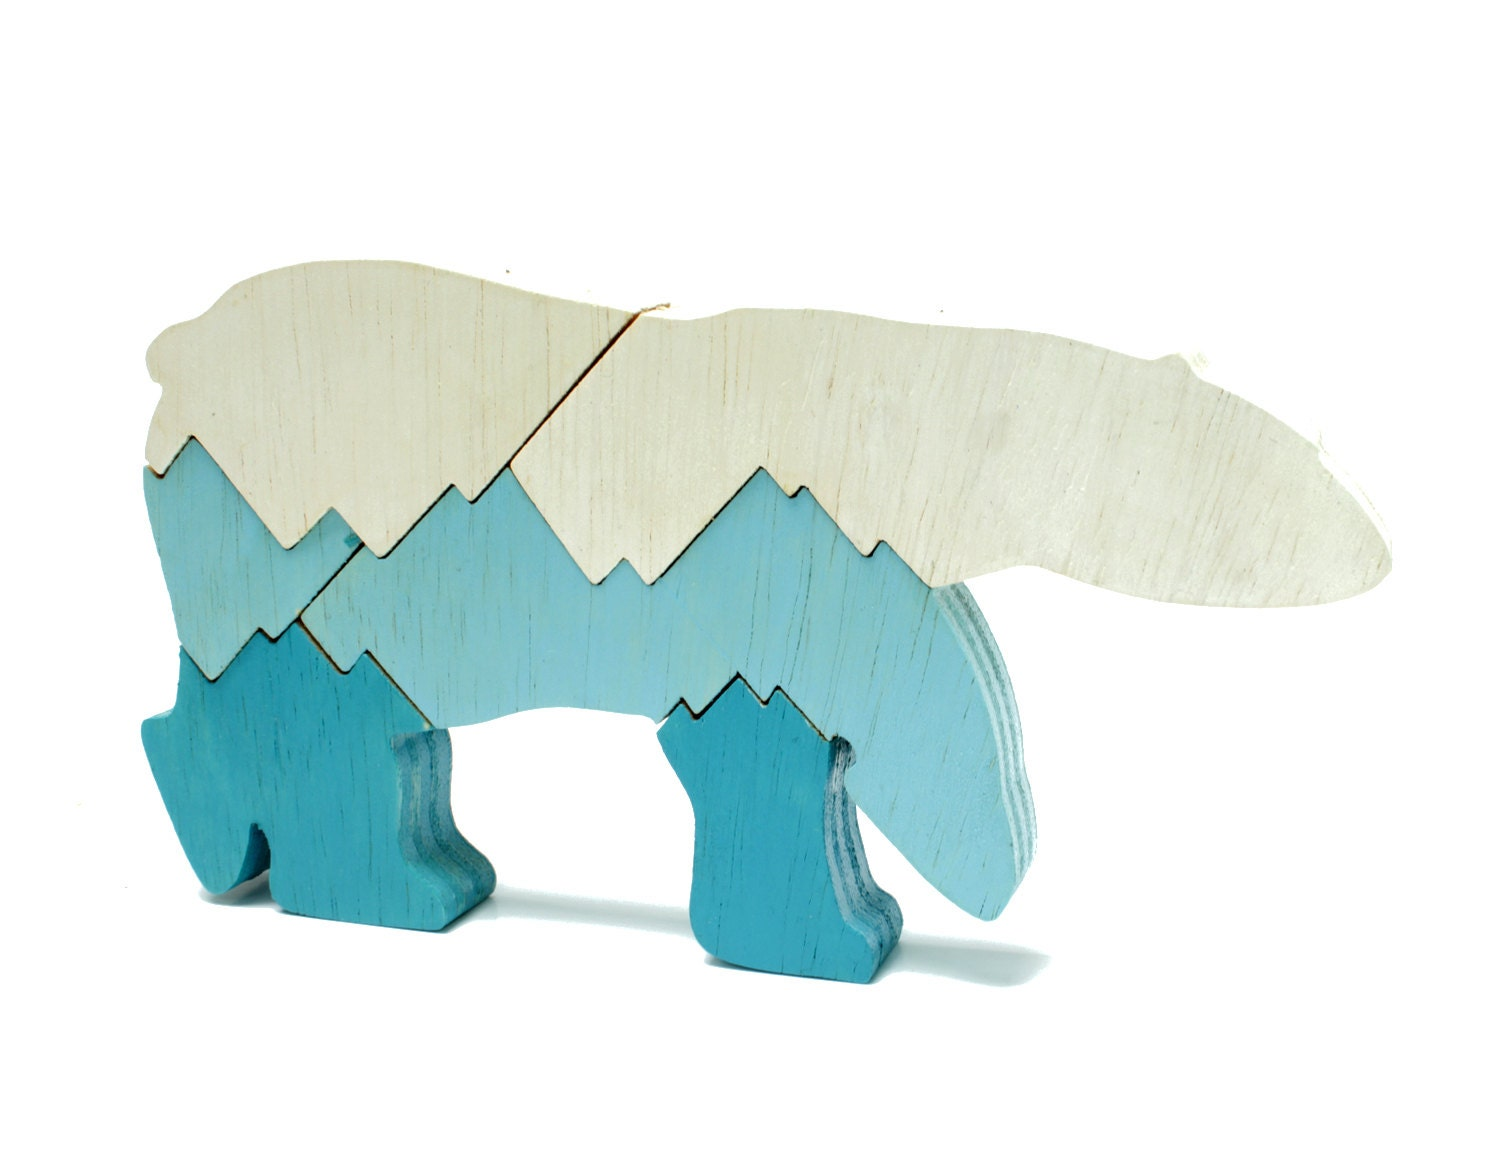 Children's Polar Bear Puzzle and Decor - Kids Eco Friendly Toy - berkshirebowls